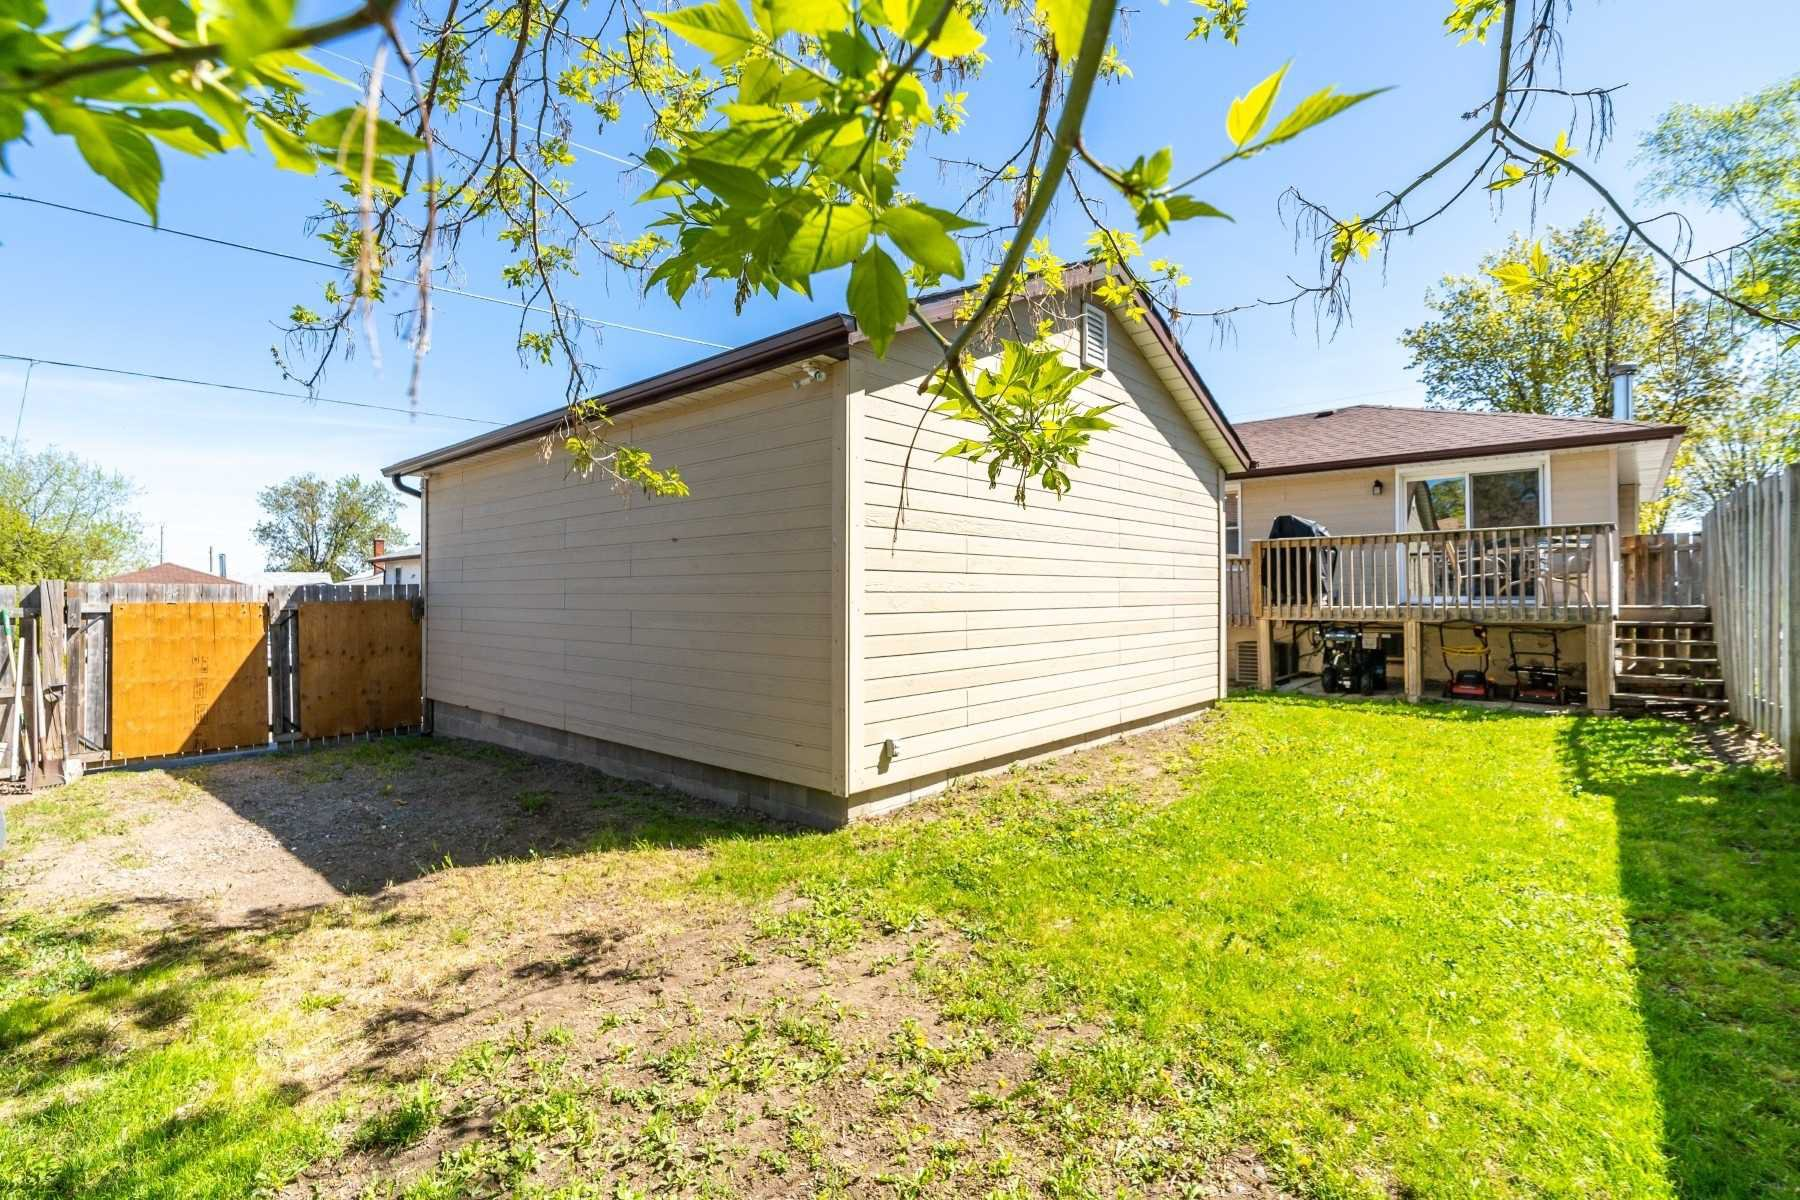 Photo 9: Photos: 40 Eastlawn Street in Oshawa: Donevan House (Bungalow) for sale : MLS®# E4769026